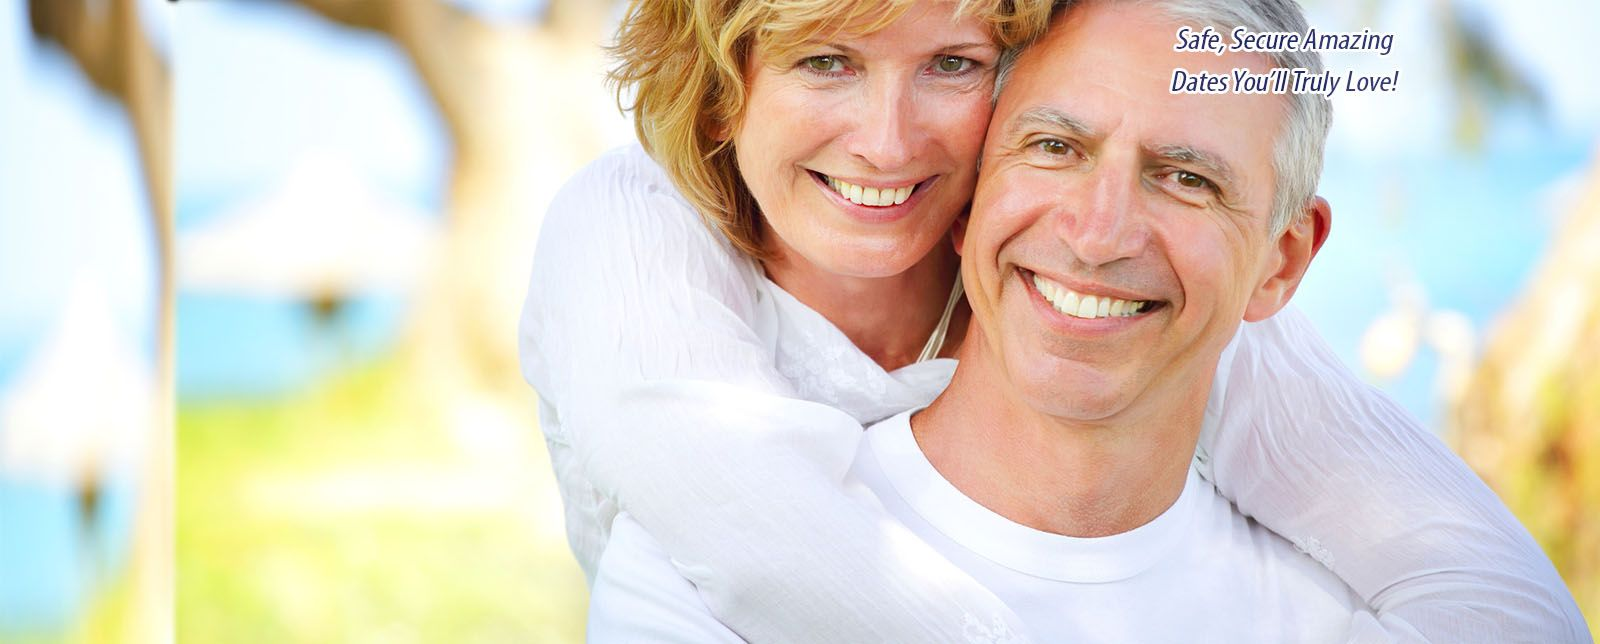 best usa dating uk sites for over 50s